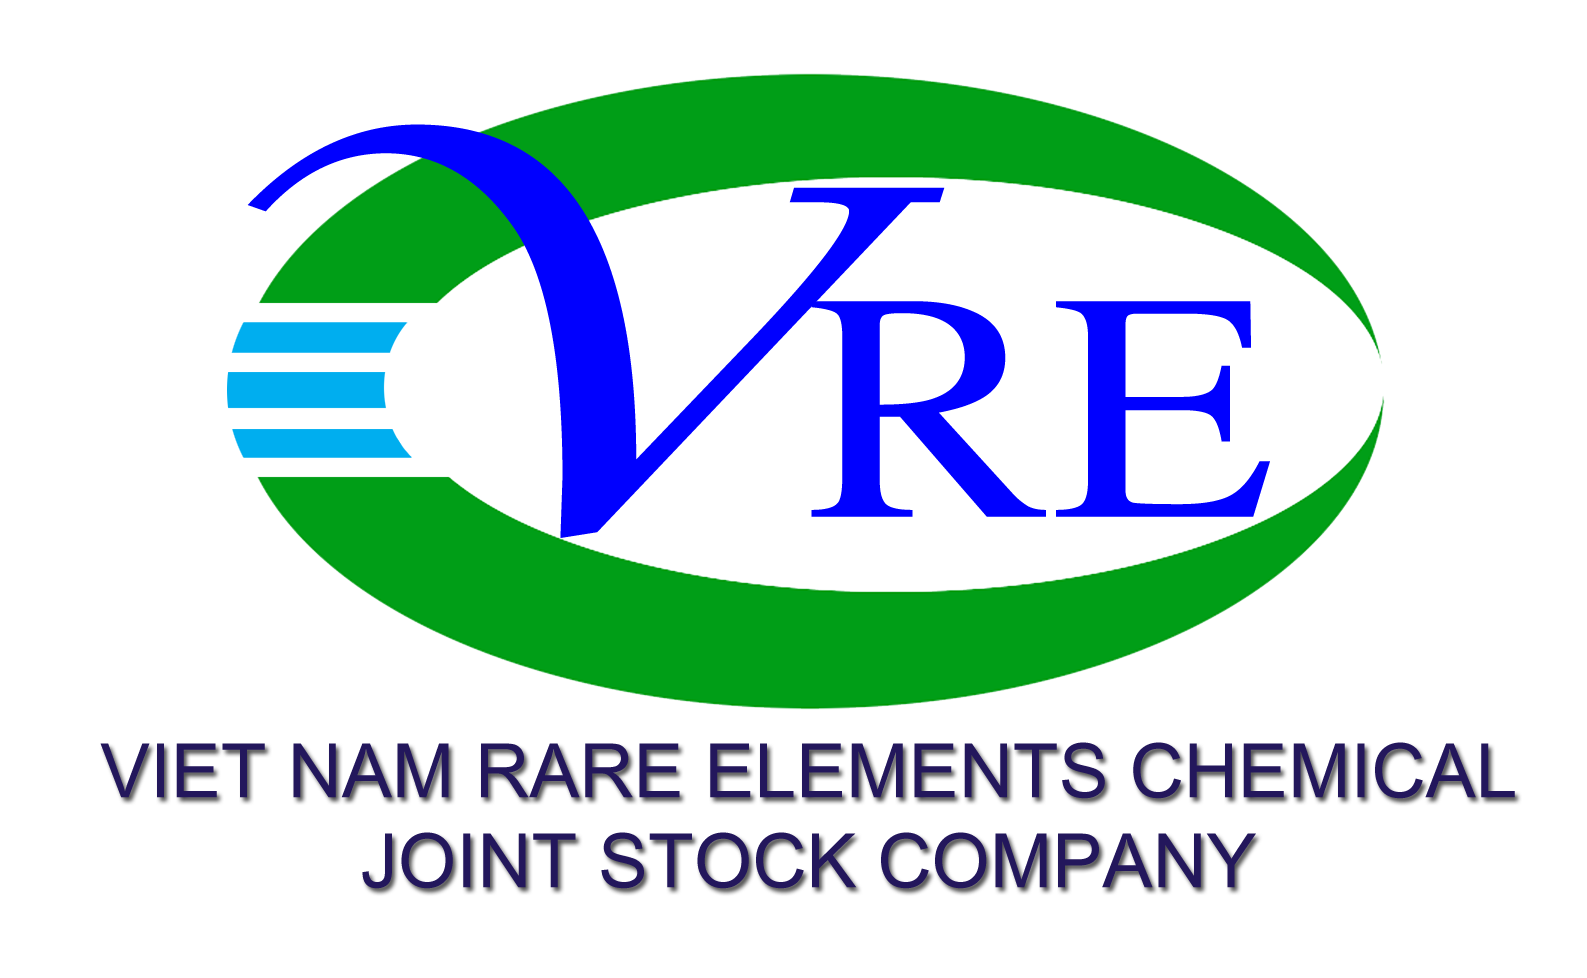 VIETNAM RARE ELEMENTS CHEMICAL JOINT STOCK COMPANY